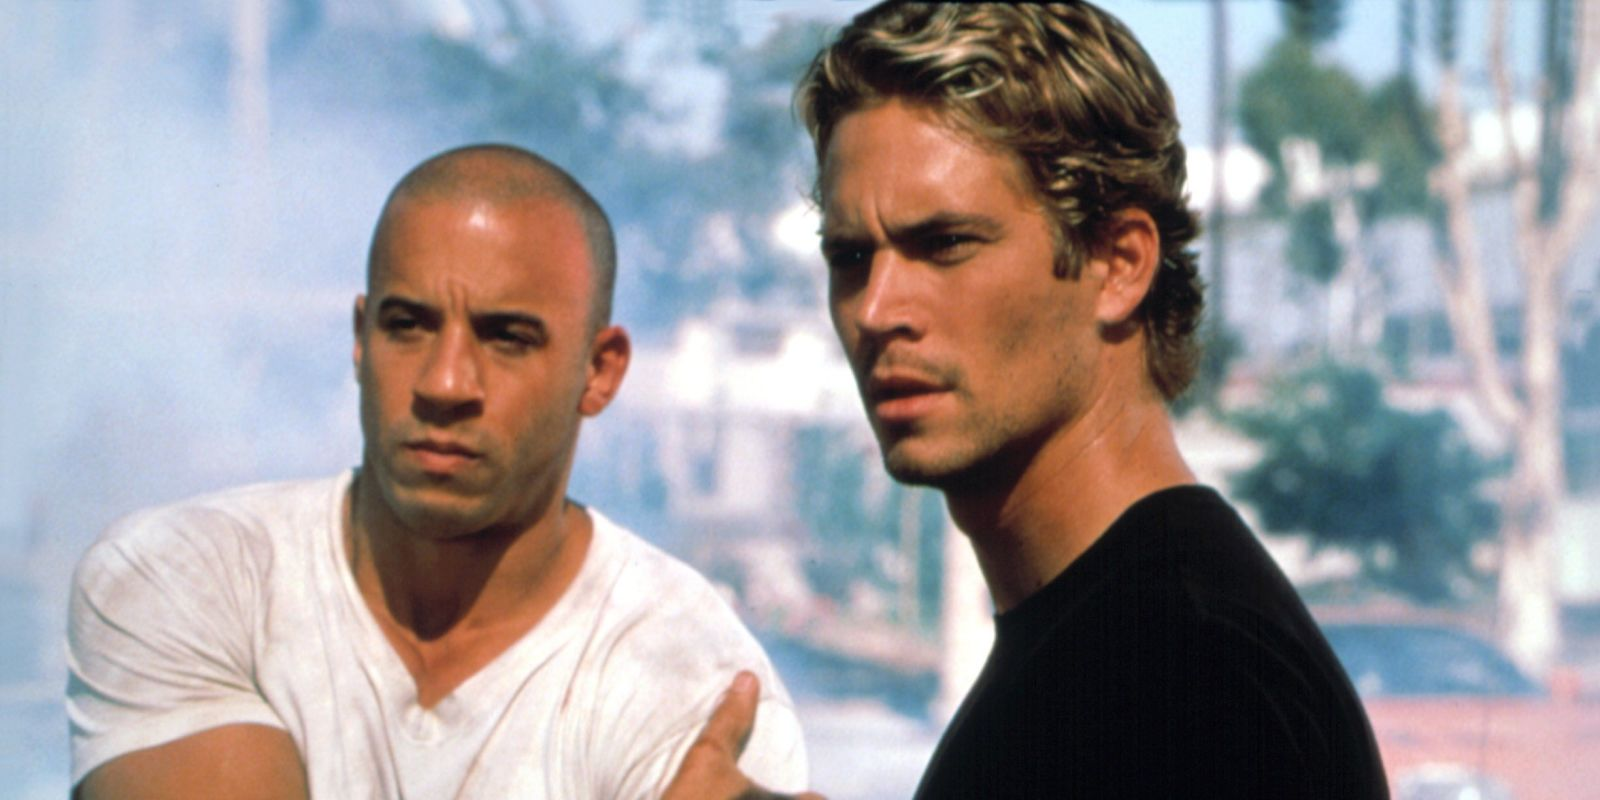 Vin diesel talks about paul walker s death i feel blessed that i m able to talk about how wonderful he was